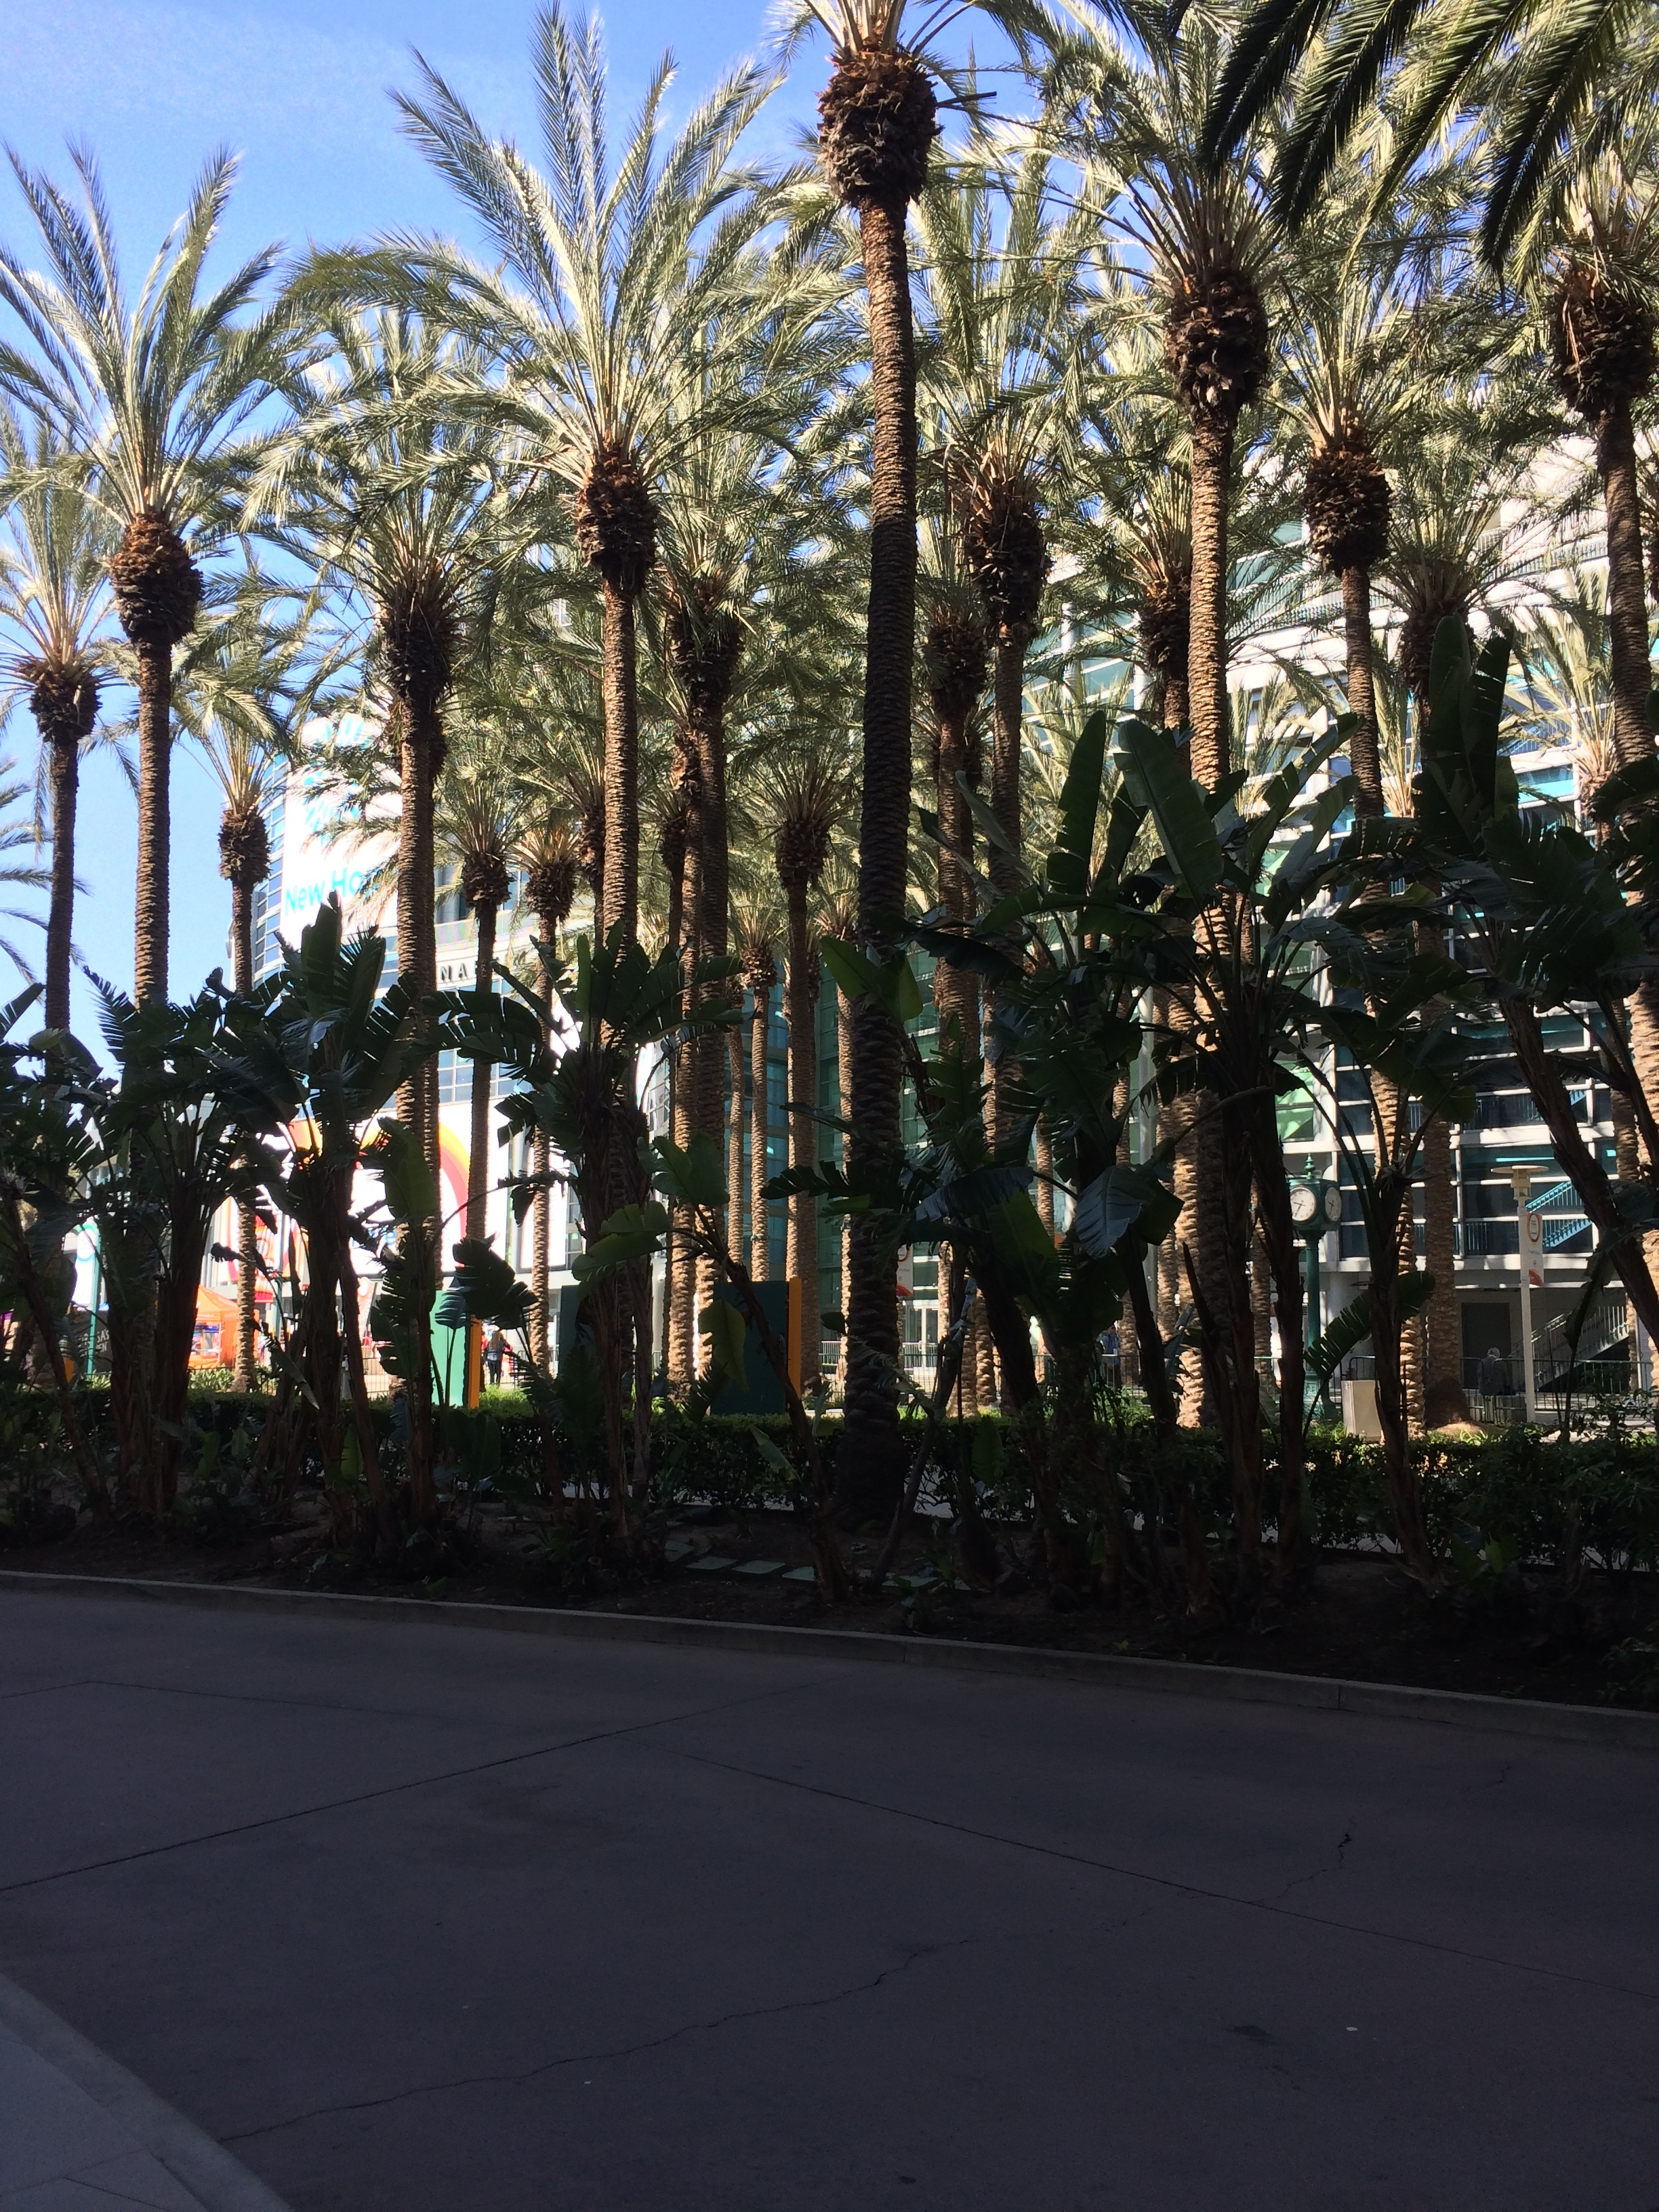 Great view of palm trees from the Expo!